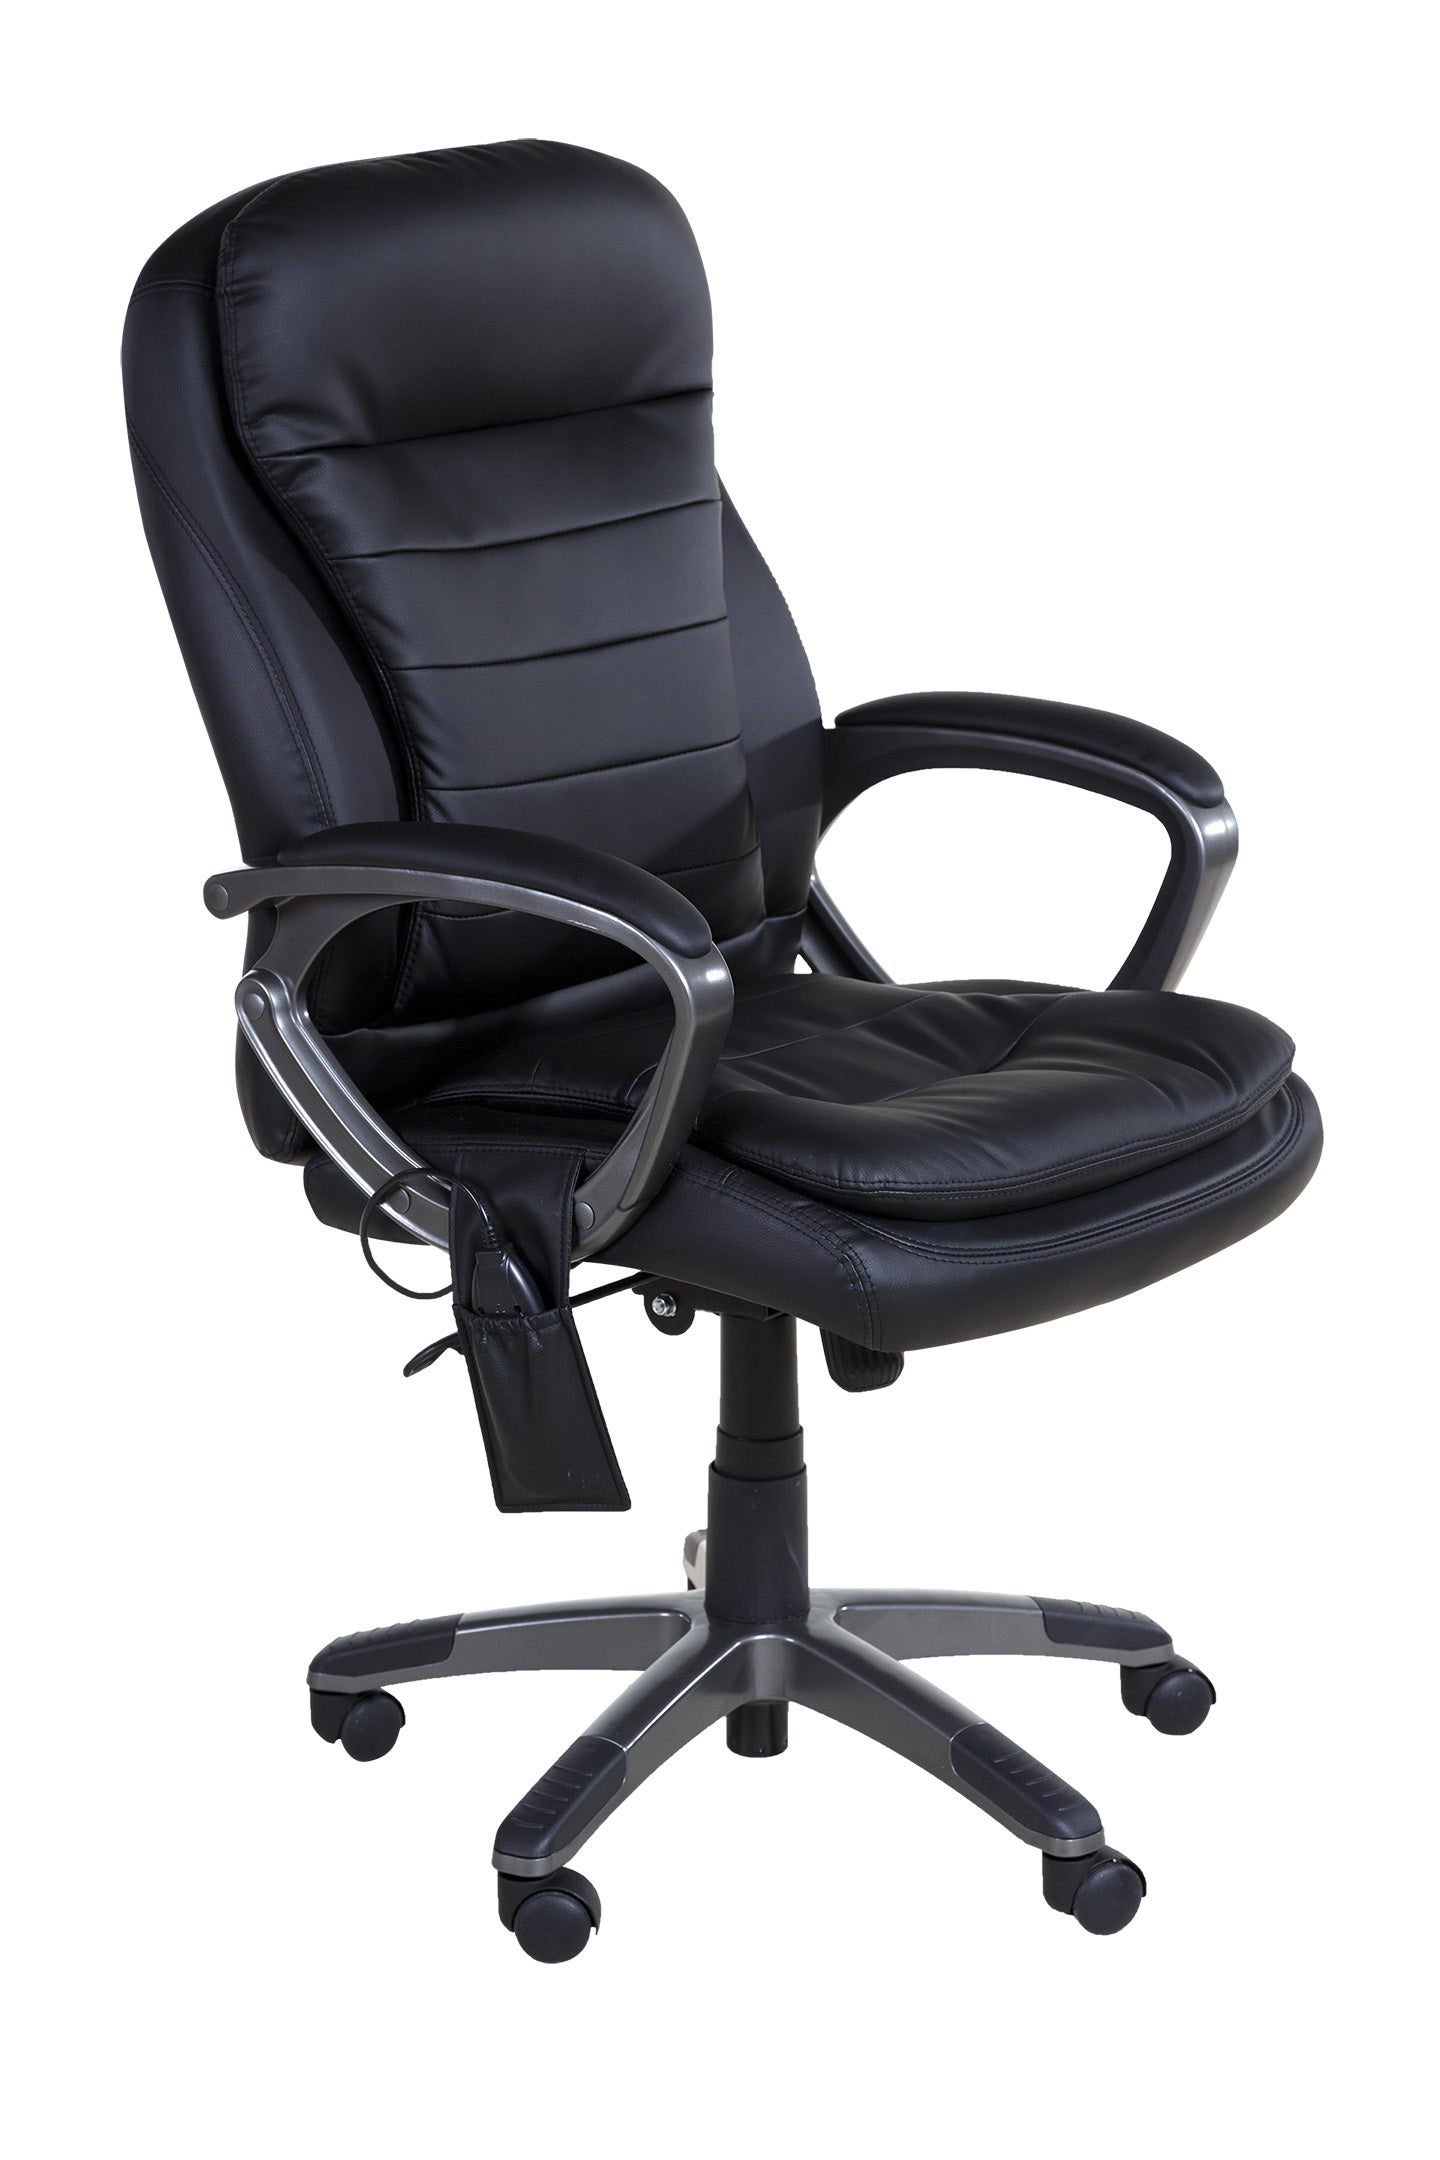 Relaxzen 60-3383 Black Leather Pillow-top Executive Chair with Heat and Massage